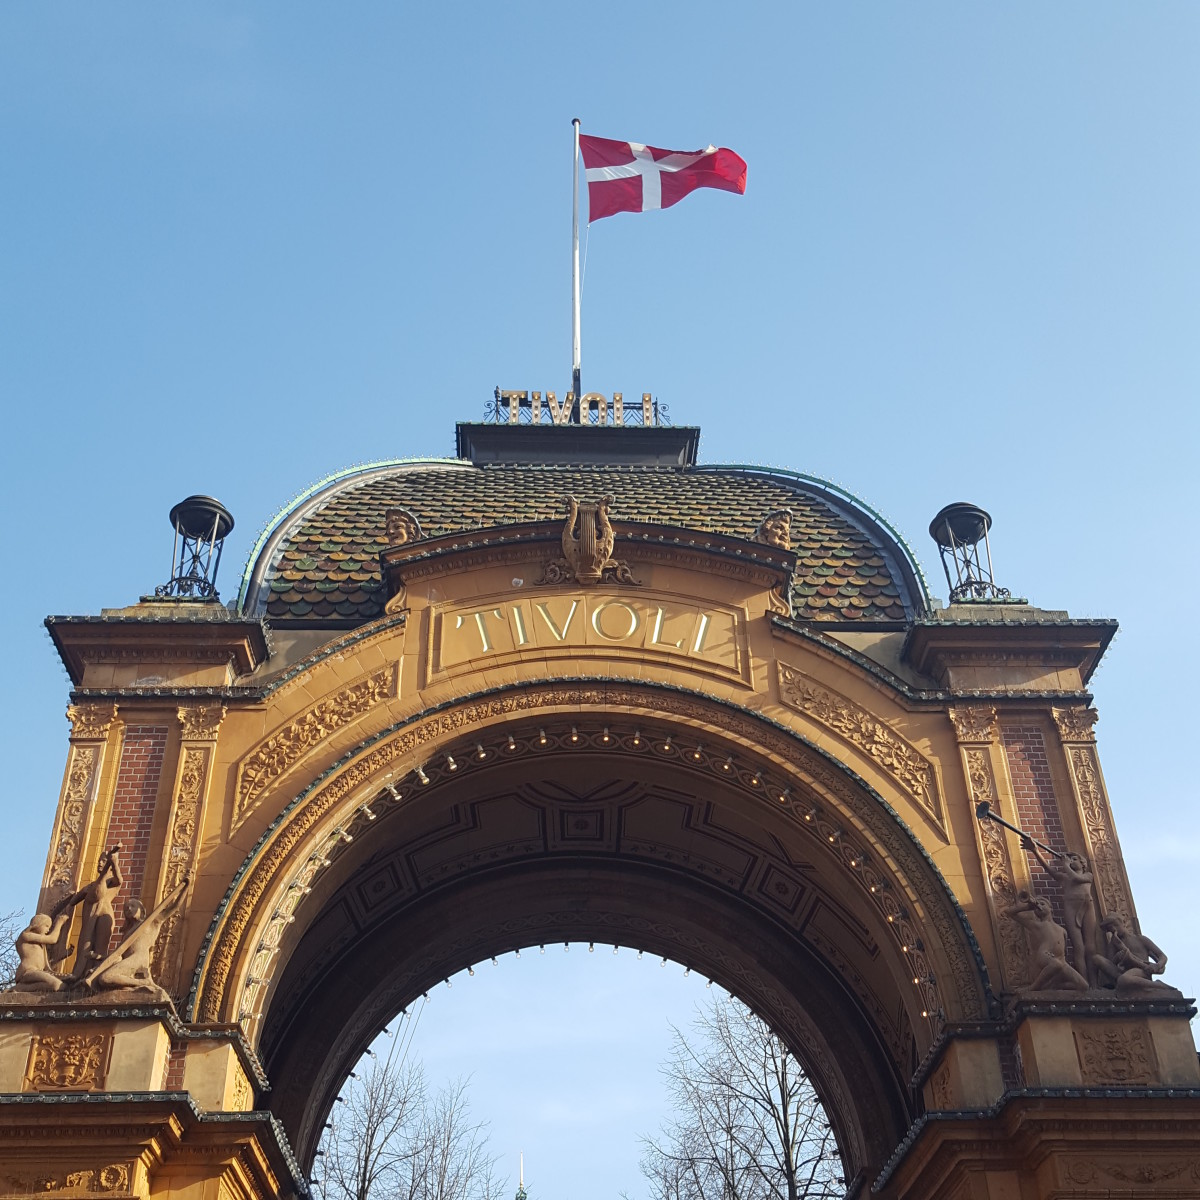 The Danish Flag flies over the entrance to Tivoli Garden.